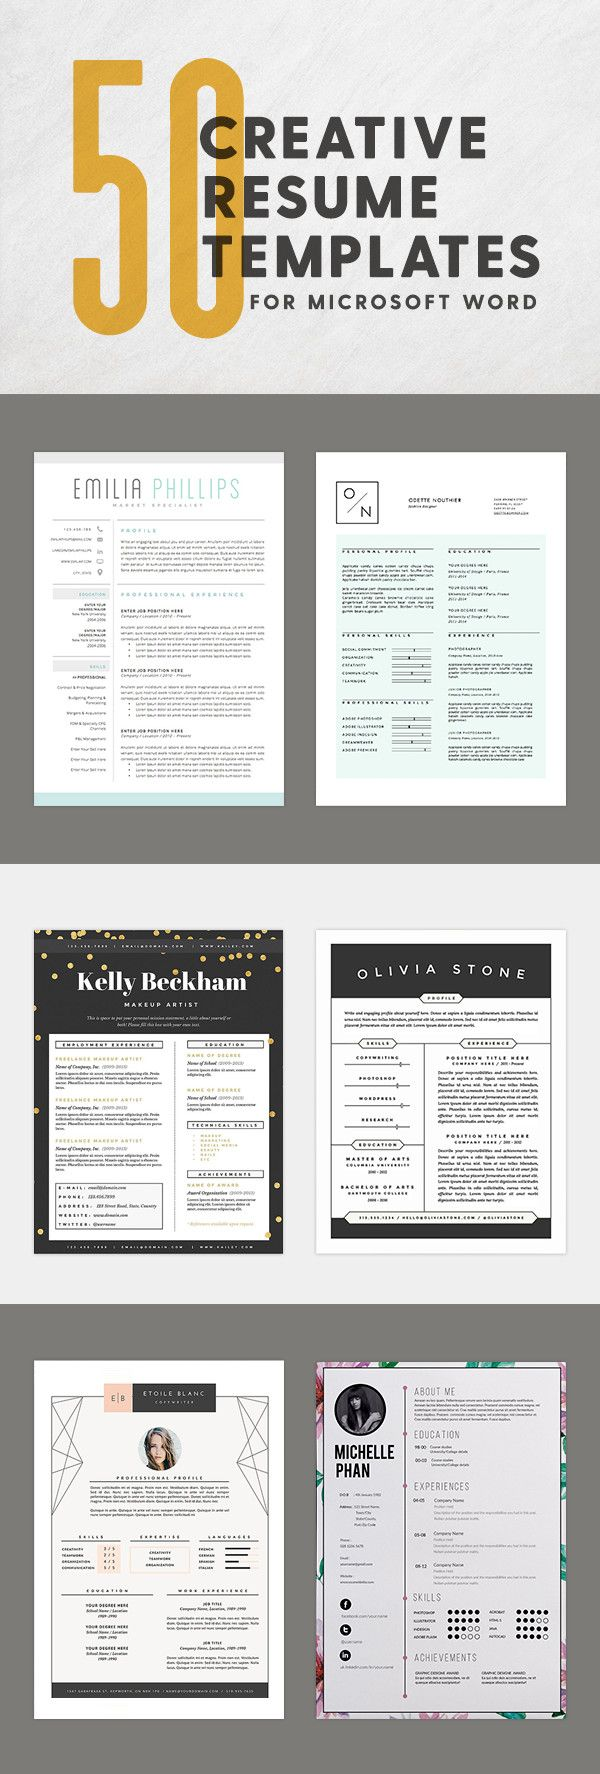 50 Innovative, Artistic Microsoft Word Resume Templates That Can Be  Customized With A Variety Of Fonts, Colors, And Formatting Changes.